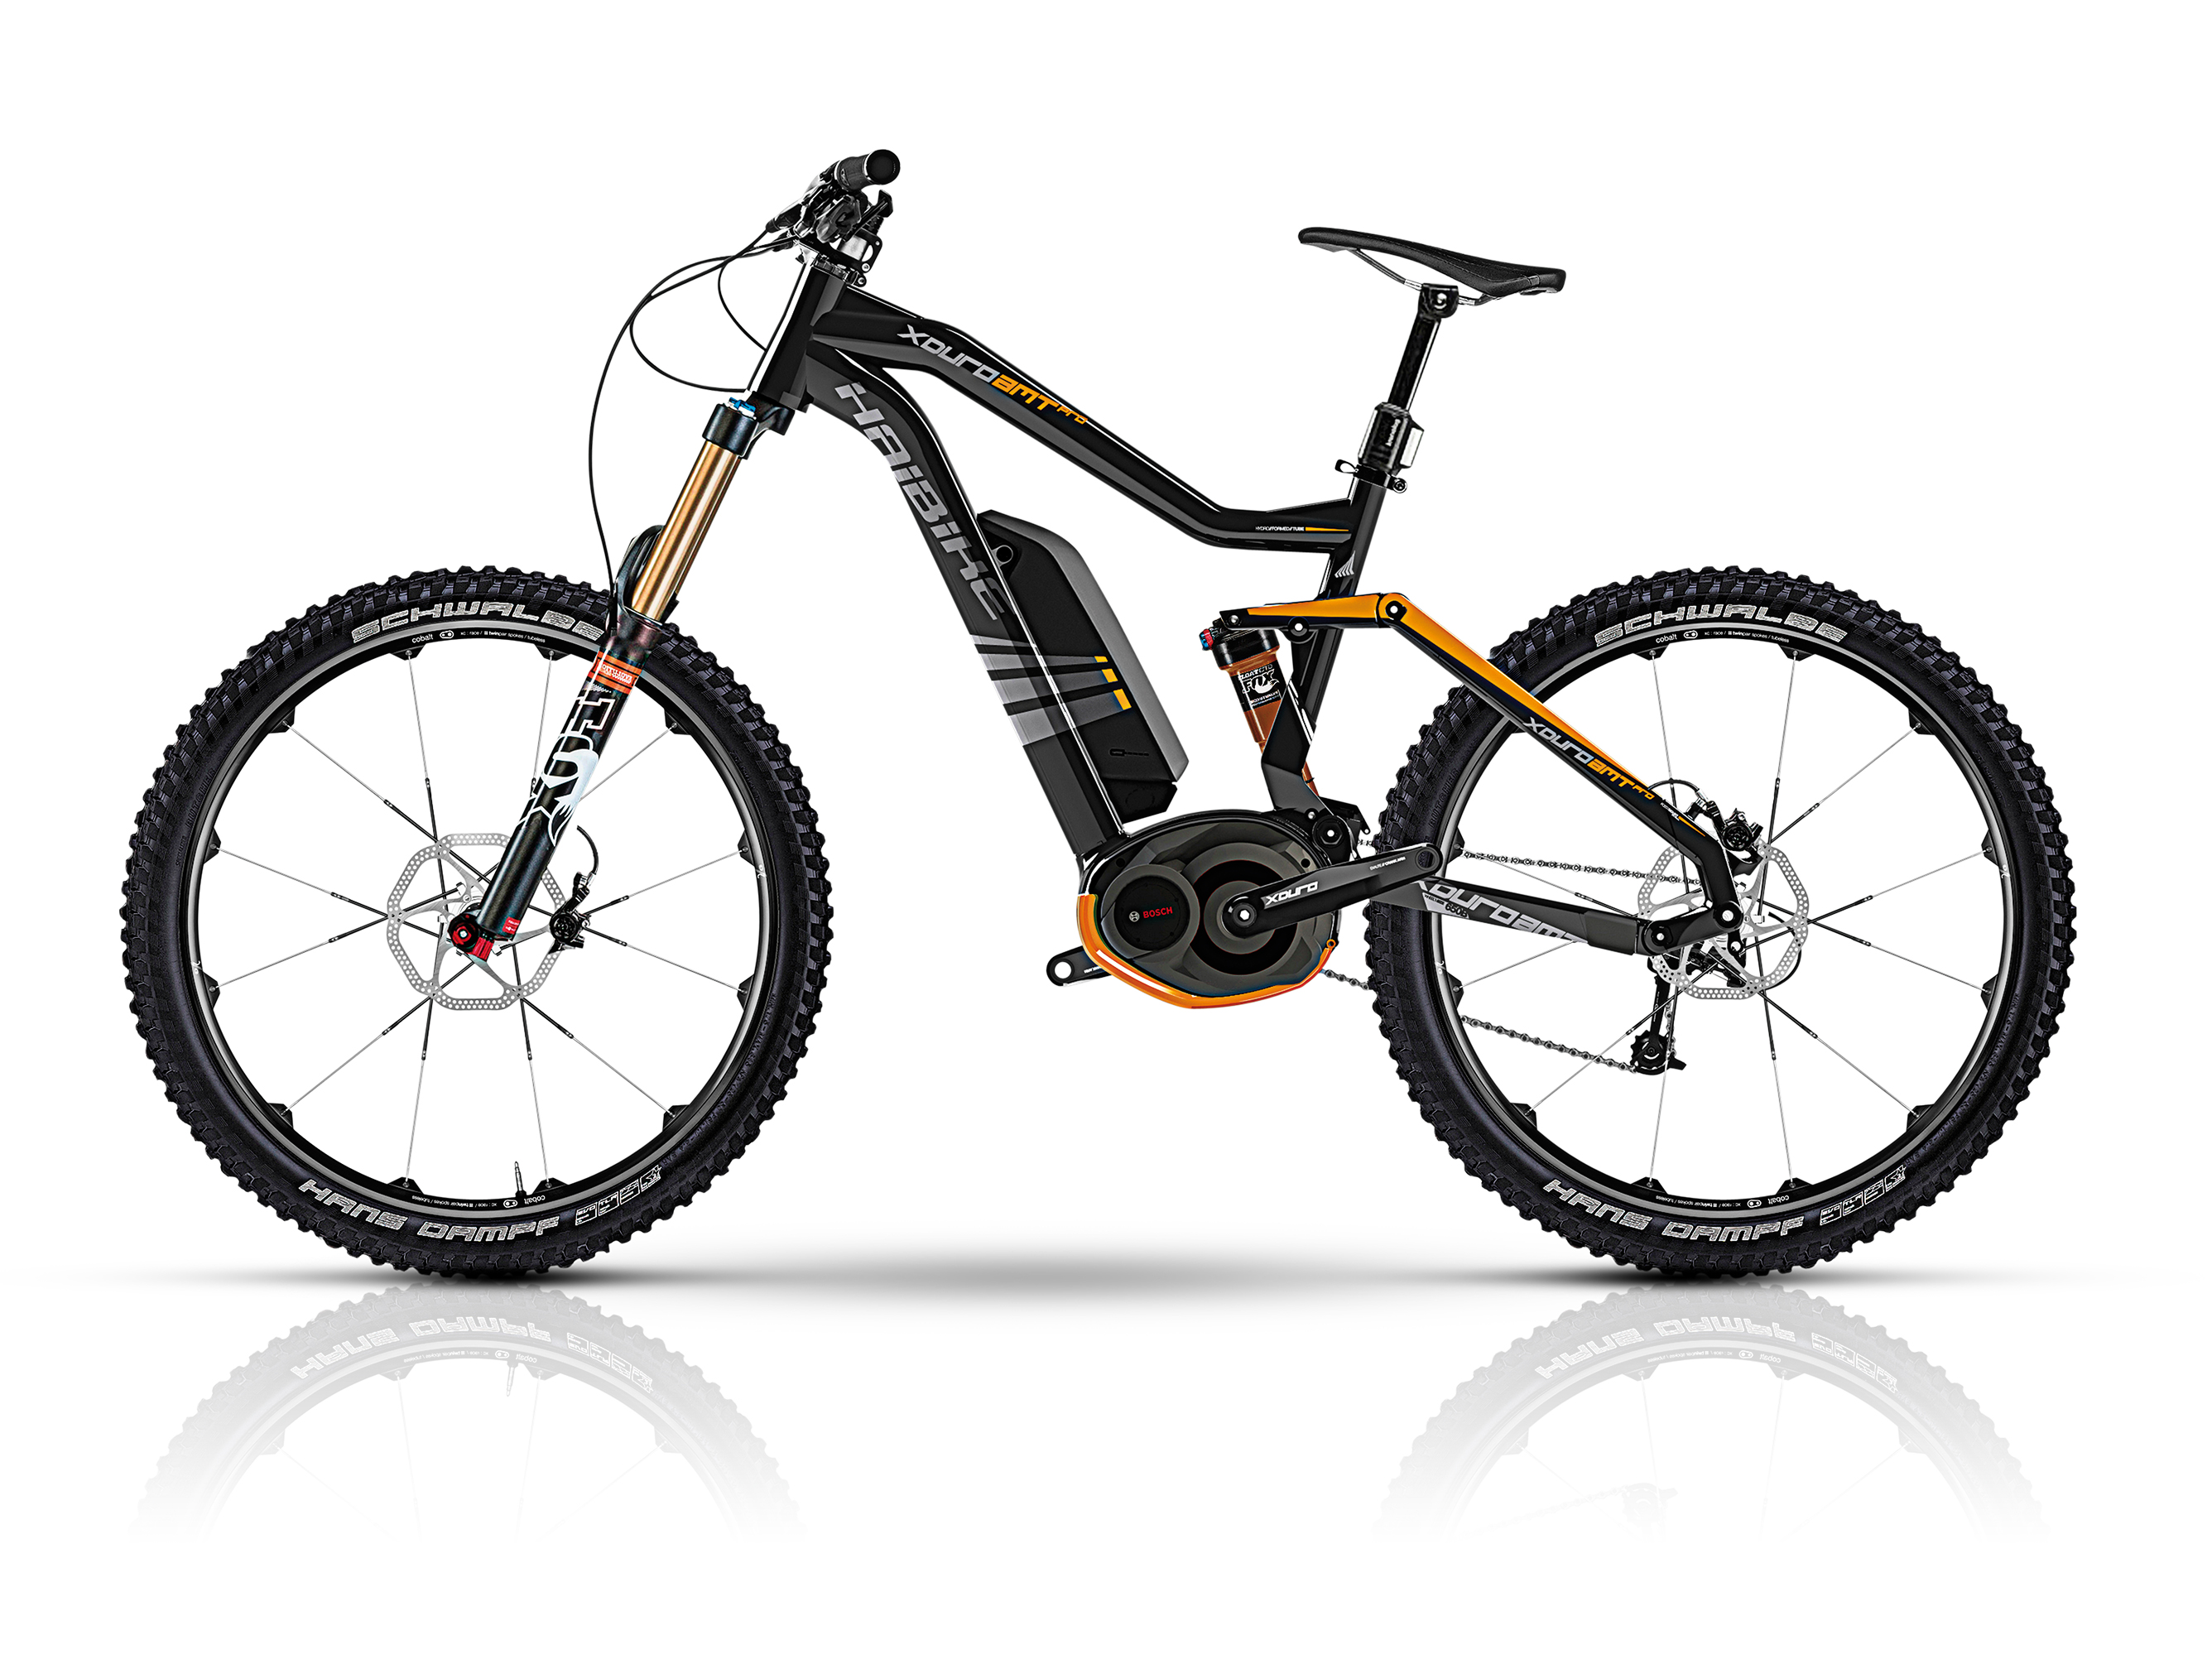 Https Www Electricbike Com Wp Content Flagallery Currie 2014